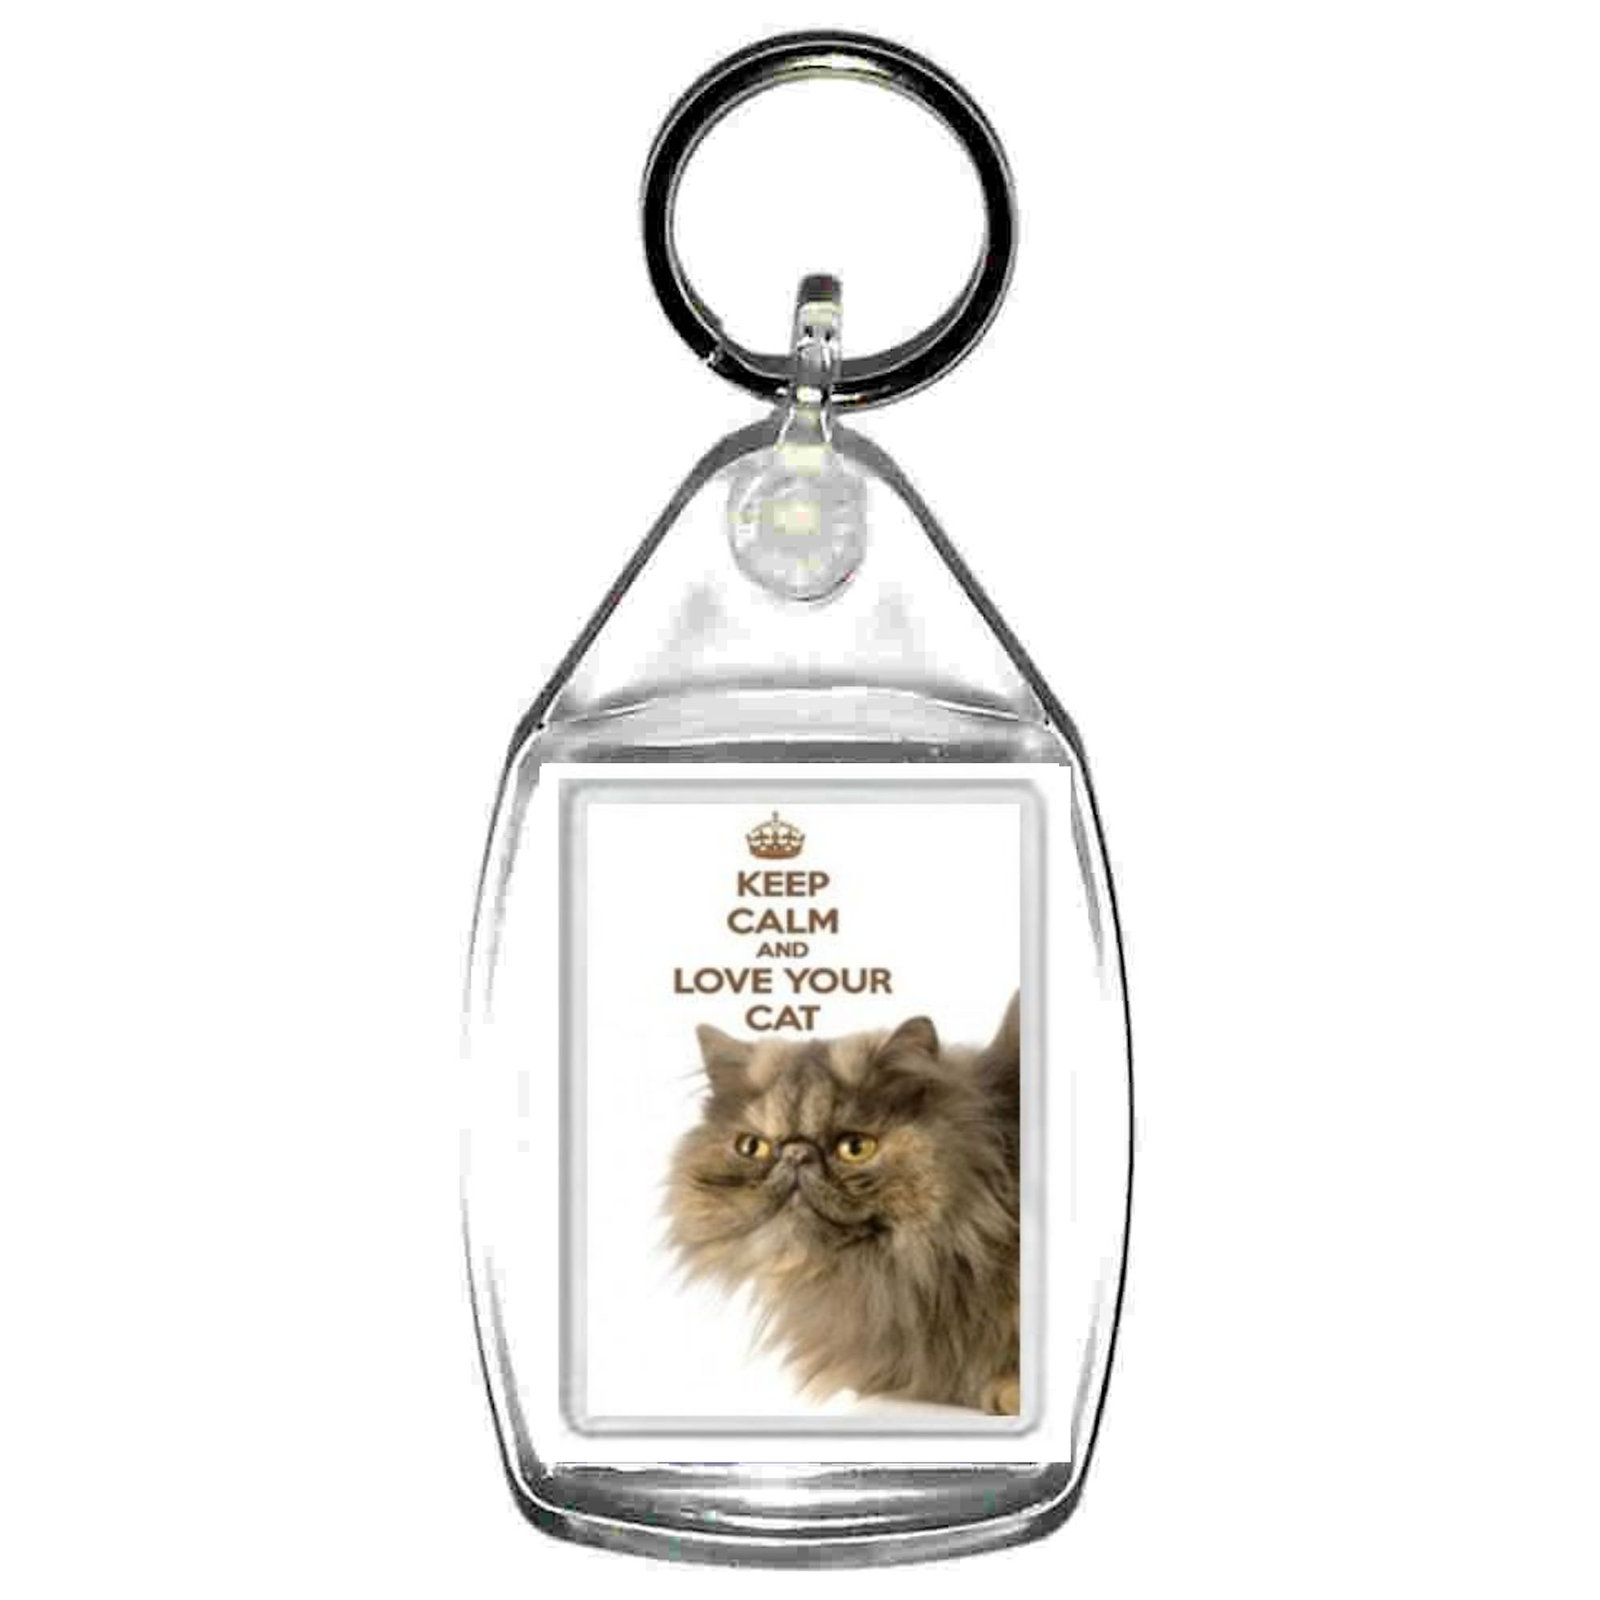 keyring double sided keep calm love cat fun, novelty, keychain key ring